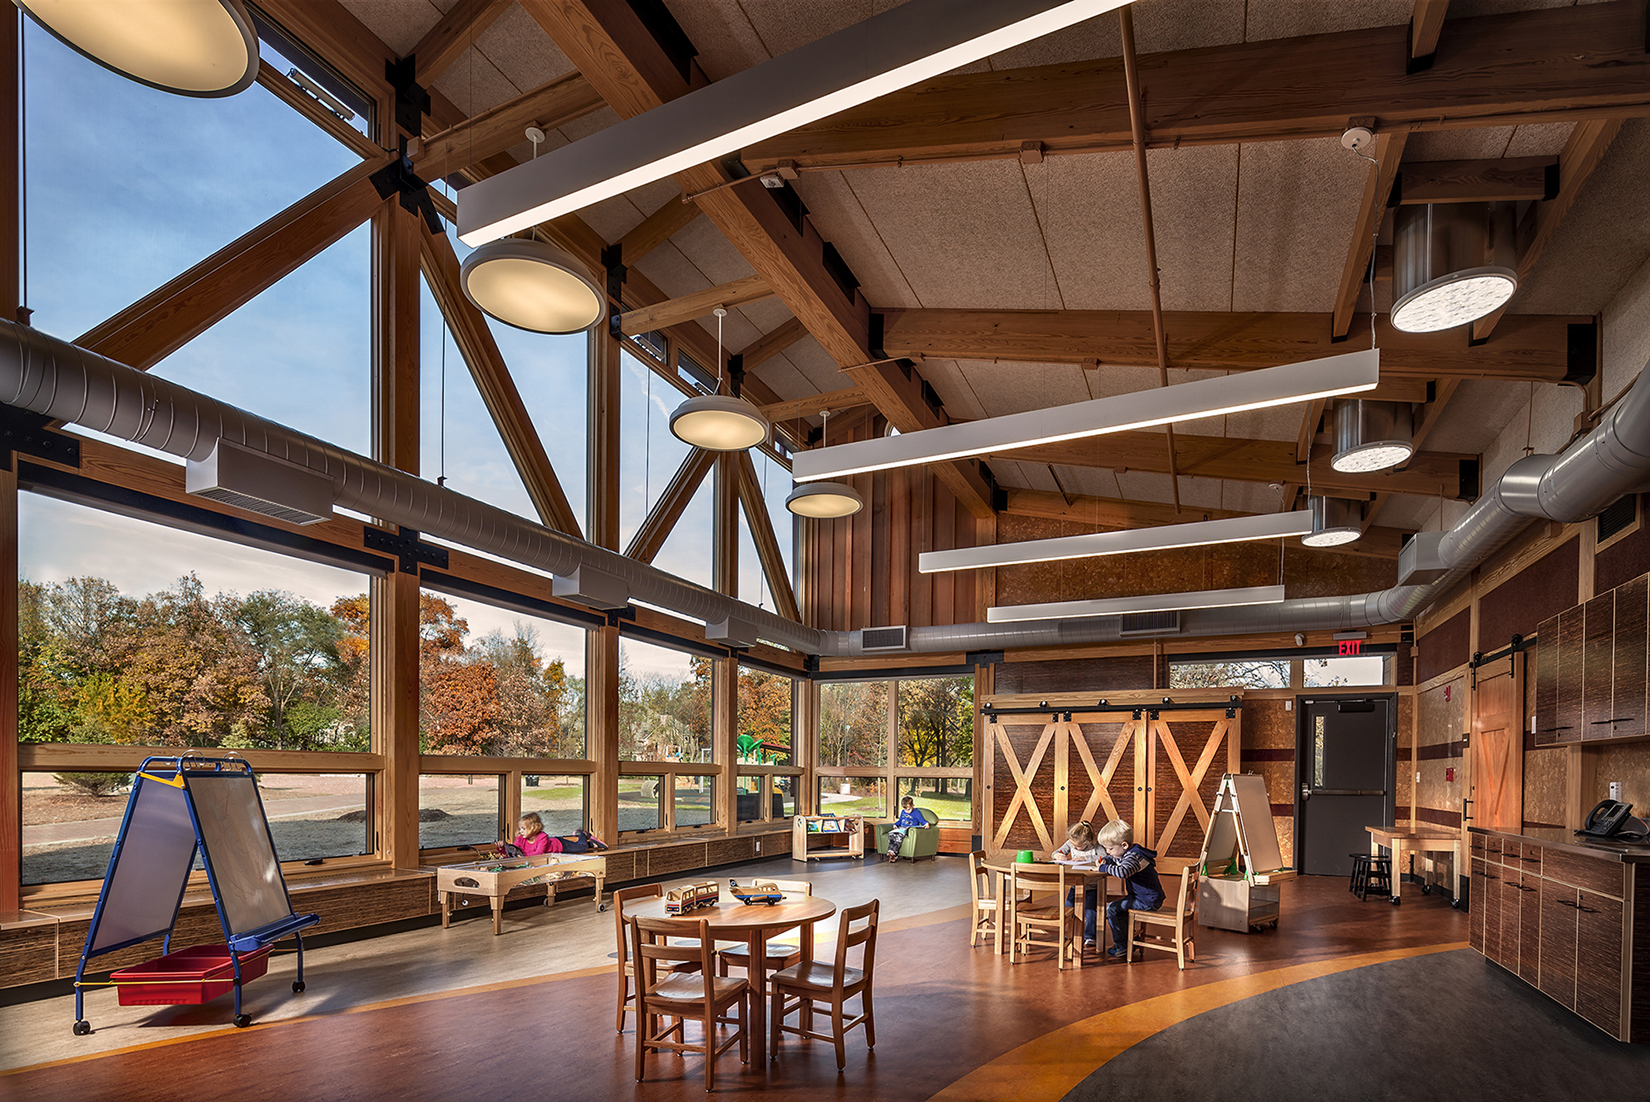 Knoch Knolls Nature Center 2015 Design Excellence